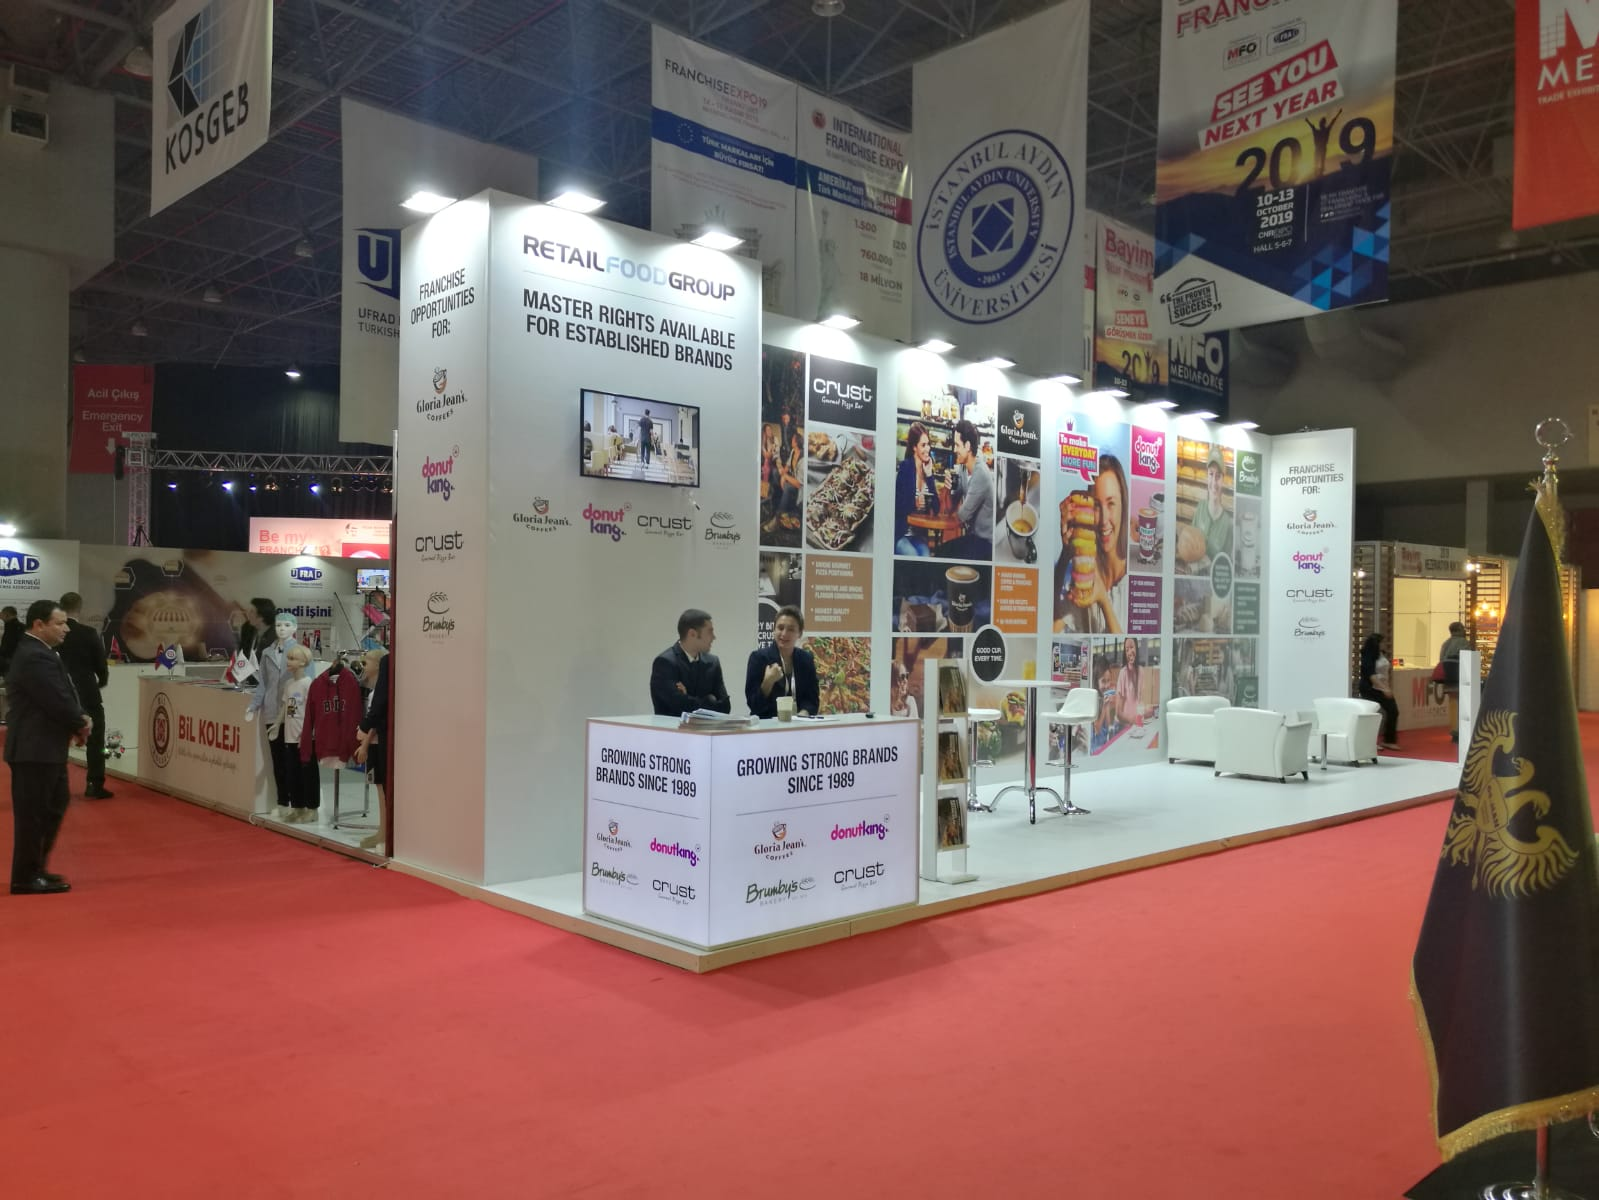 <a href='application-detail/150'>CLICK HERE - Franchising 11-14 Oct ISTANBUL TURKEY RFG STAND   SHOW MORE<a/>